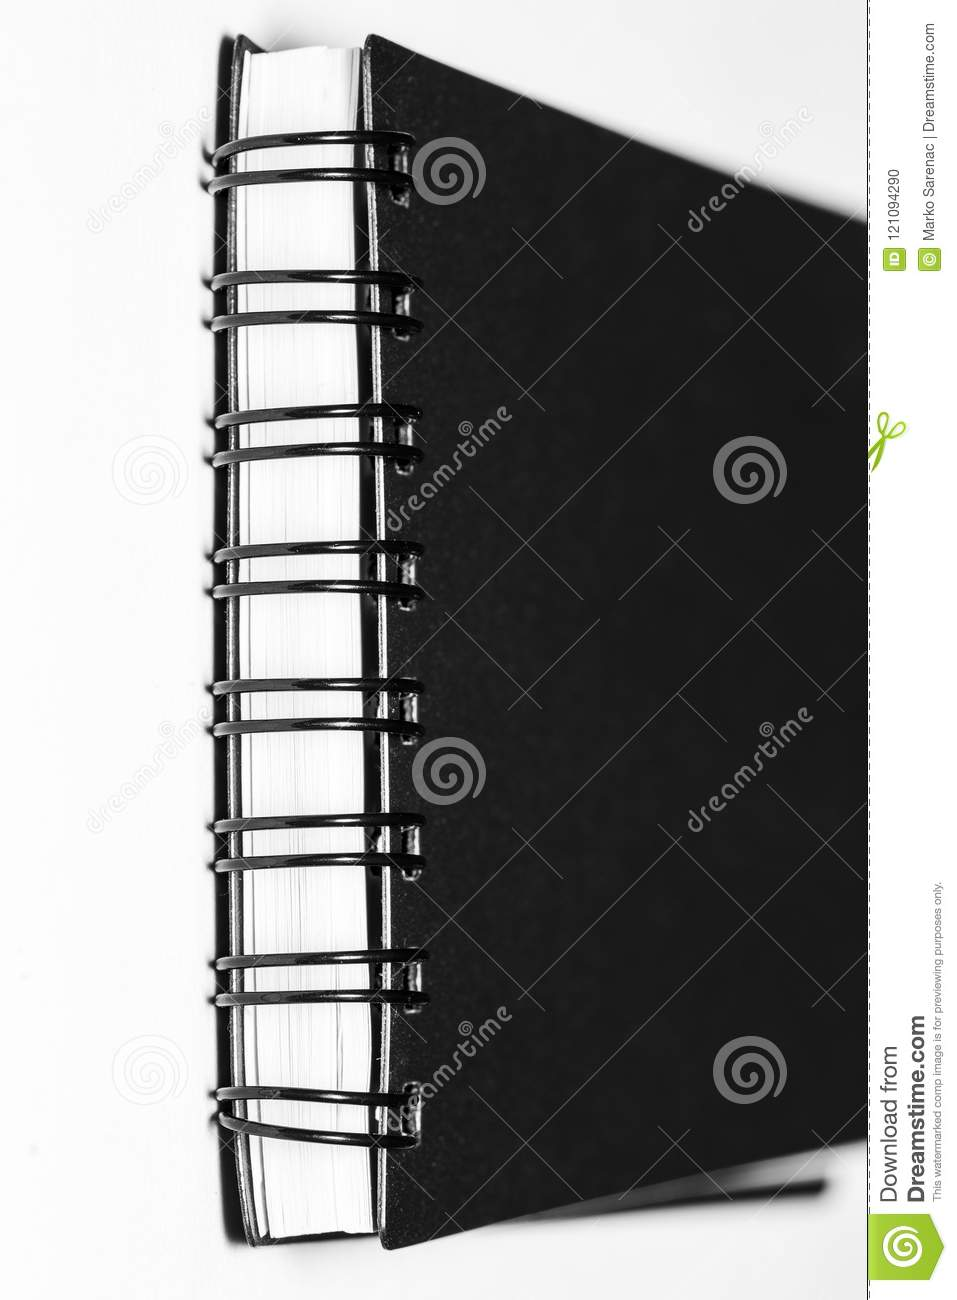 Spiral Notebook Template With The Black Cover Stock Illustration